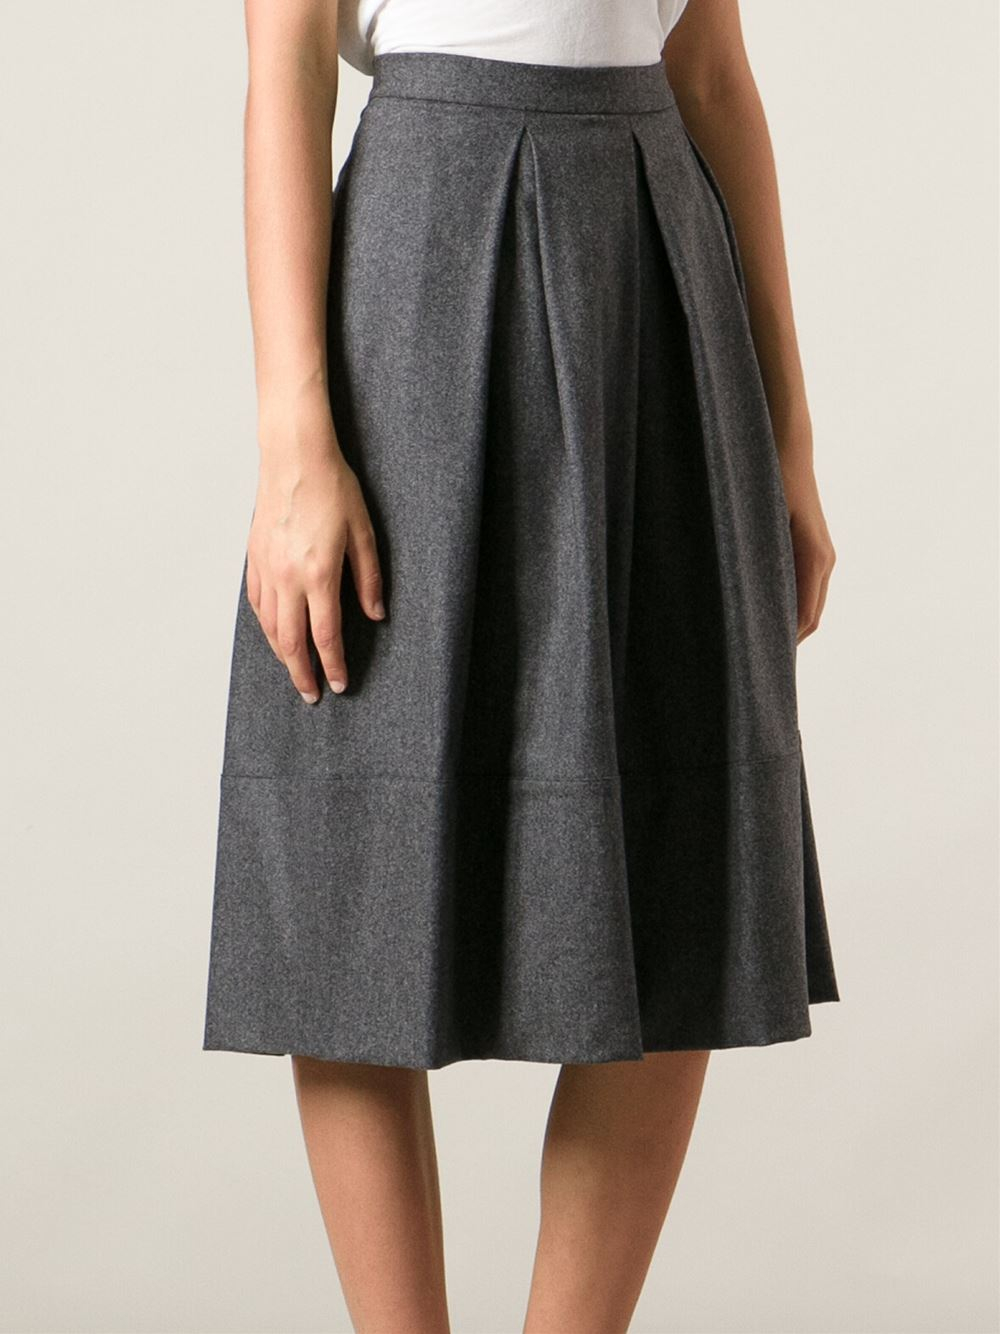 Societe anonyme Flared Skirt in Gray | Lyst